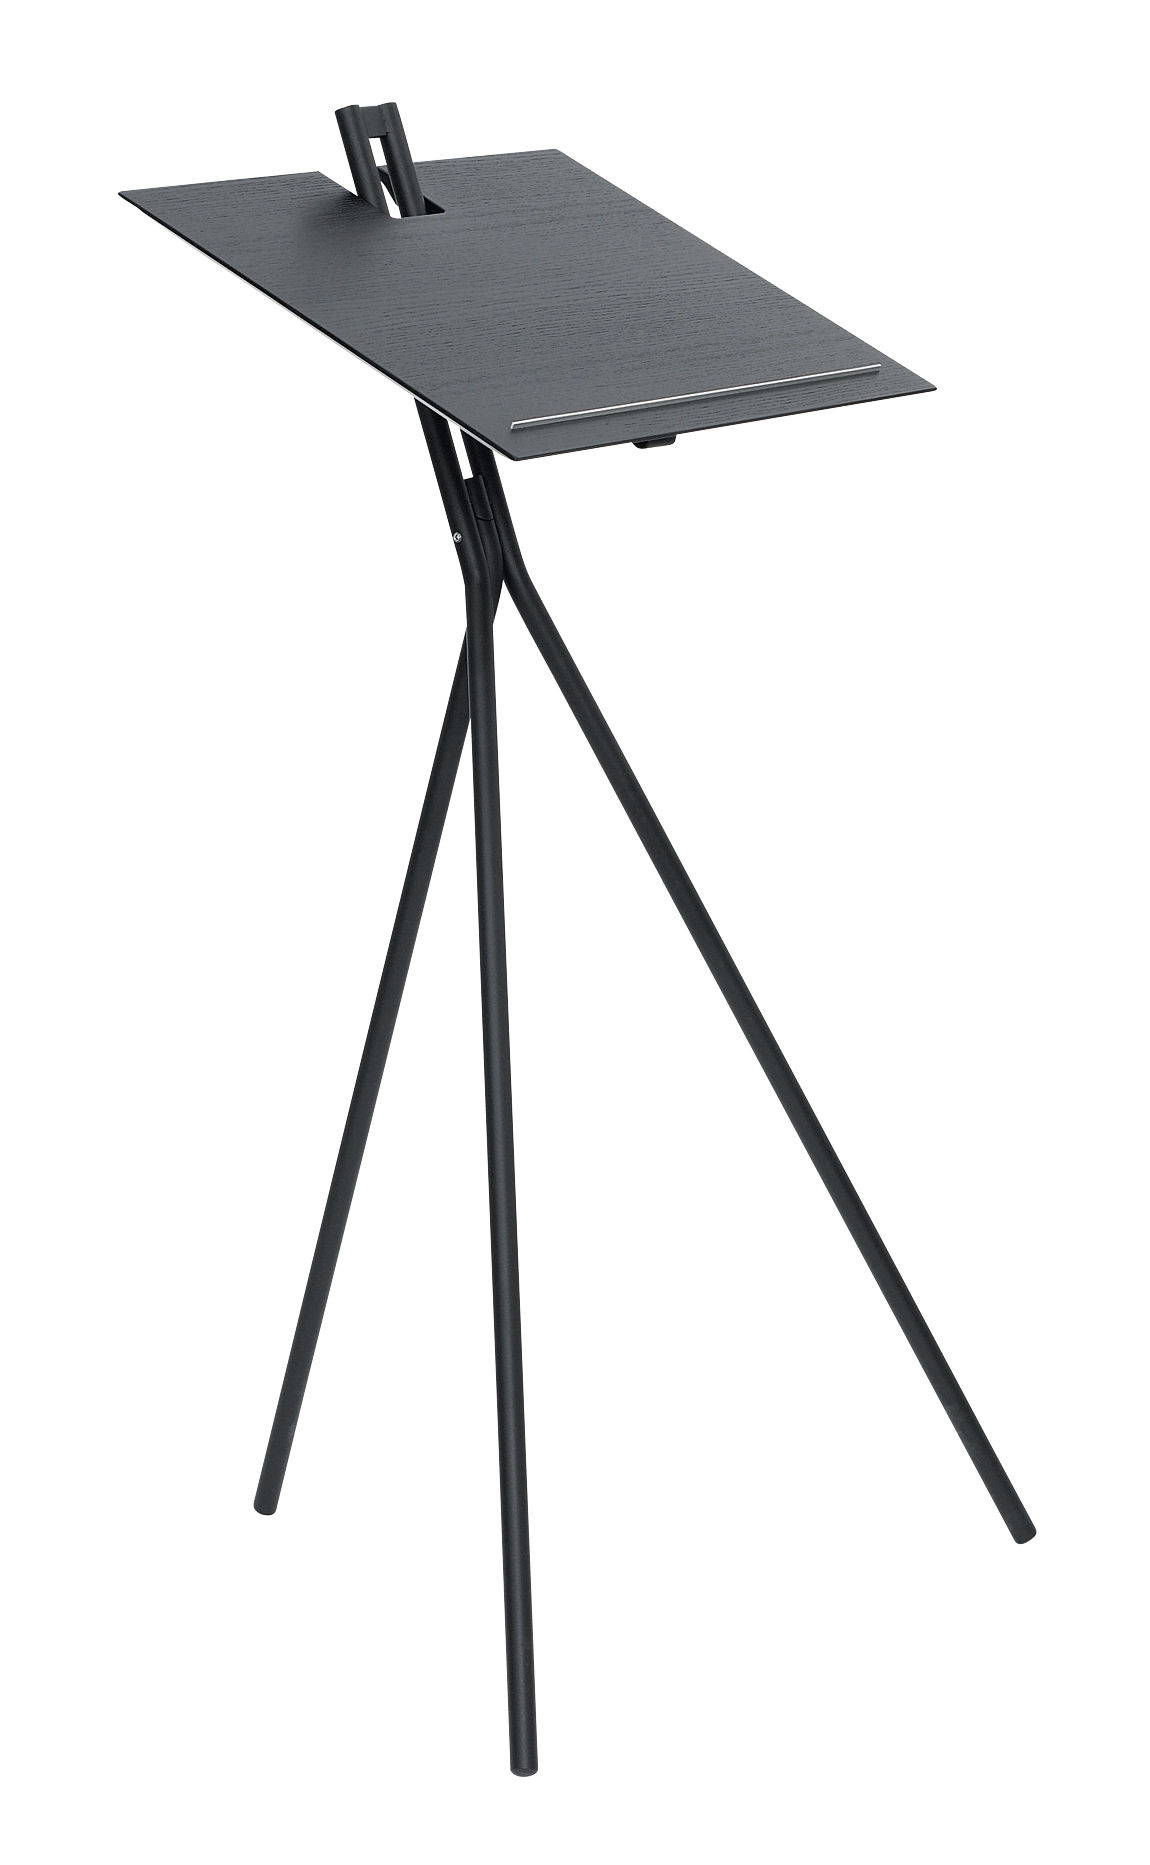 Furniture - Miscellaneous furniture - Notos Reading desk - Adjustable height by ClassiCon - Black - Plywood, Steel